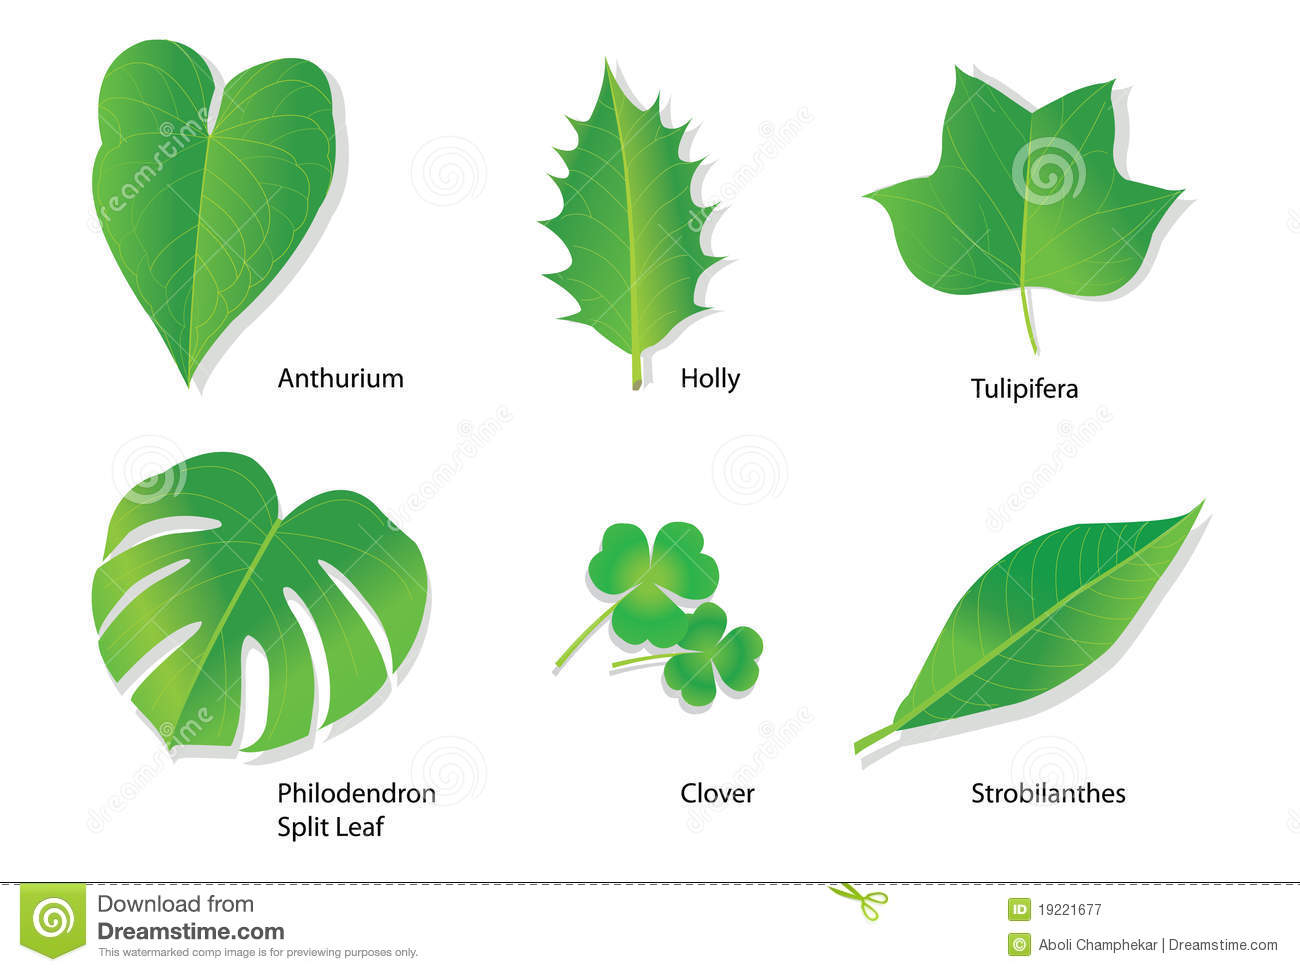 Tropical Leaves With Botanical Names Stock Vector Illustration Of Environmental Acanthaceae 19221677 Alibaba.com offers 827 tropical trees names products. dreamstime com